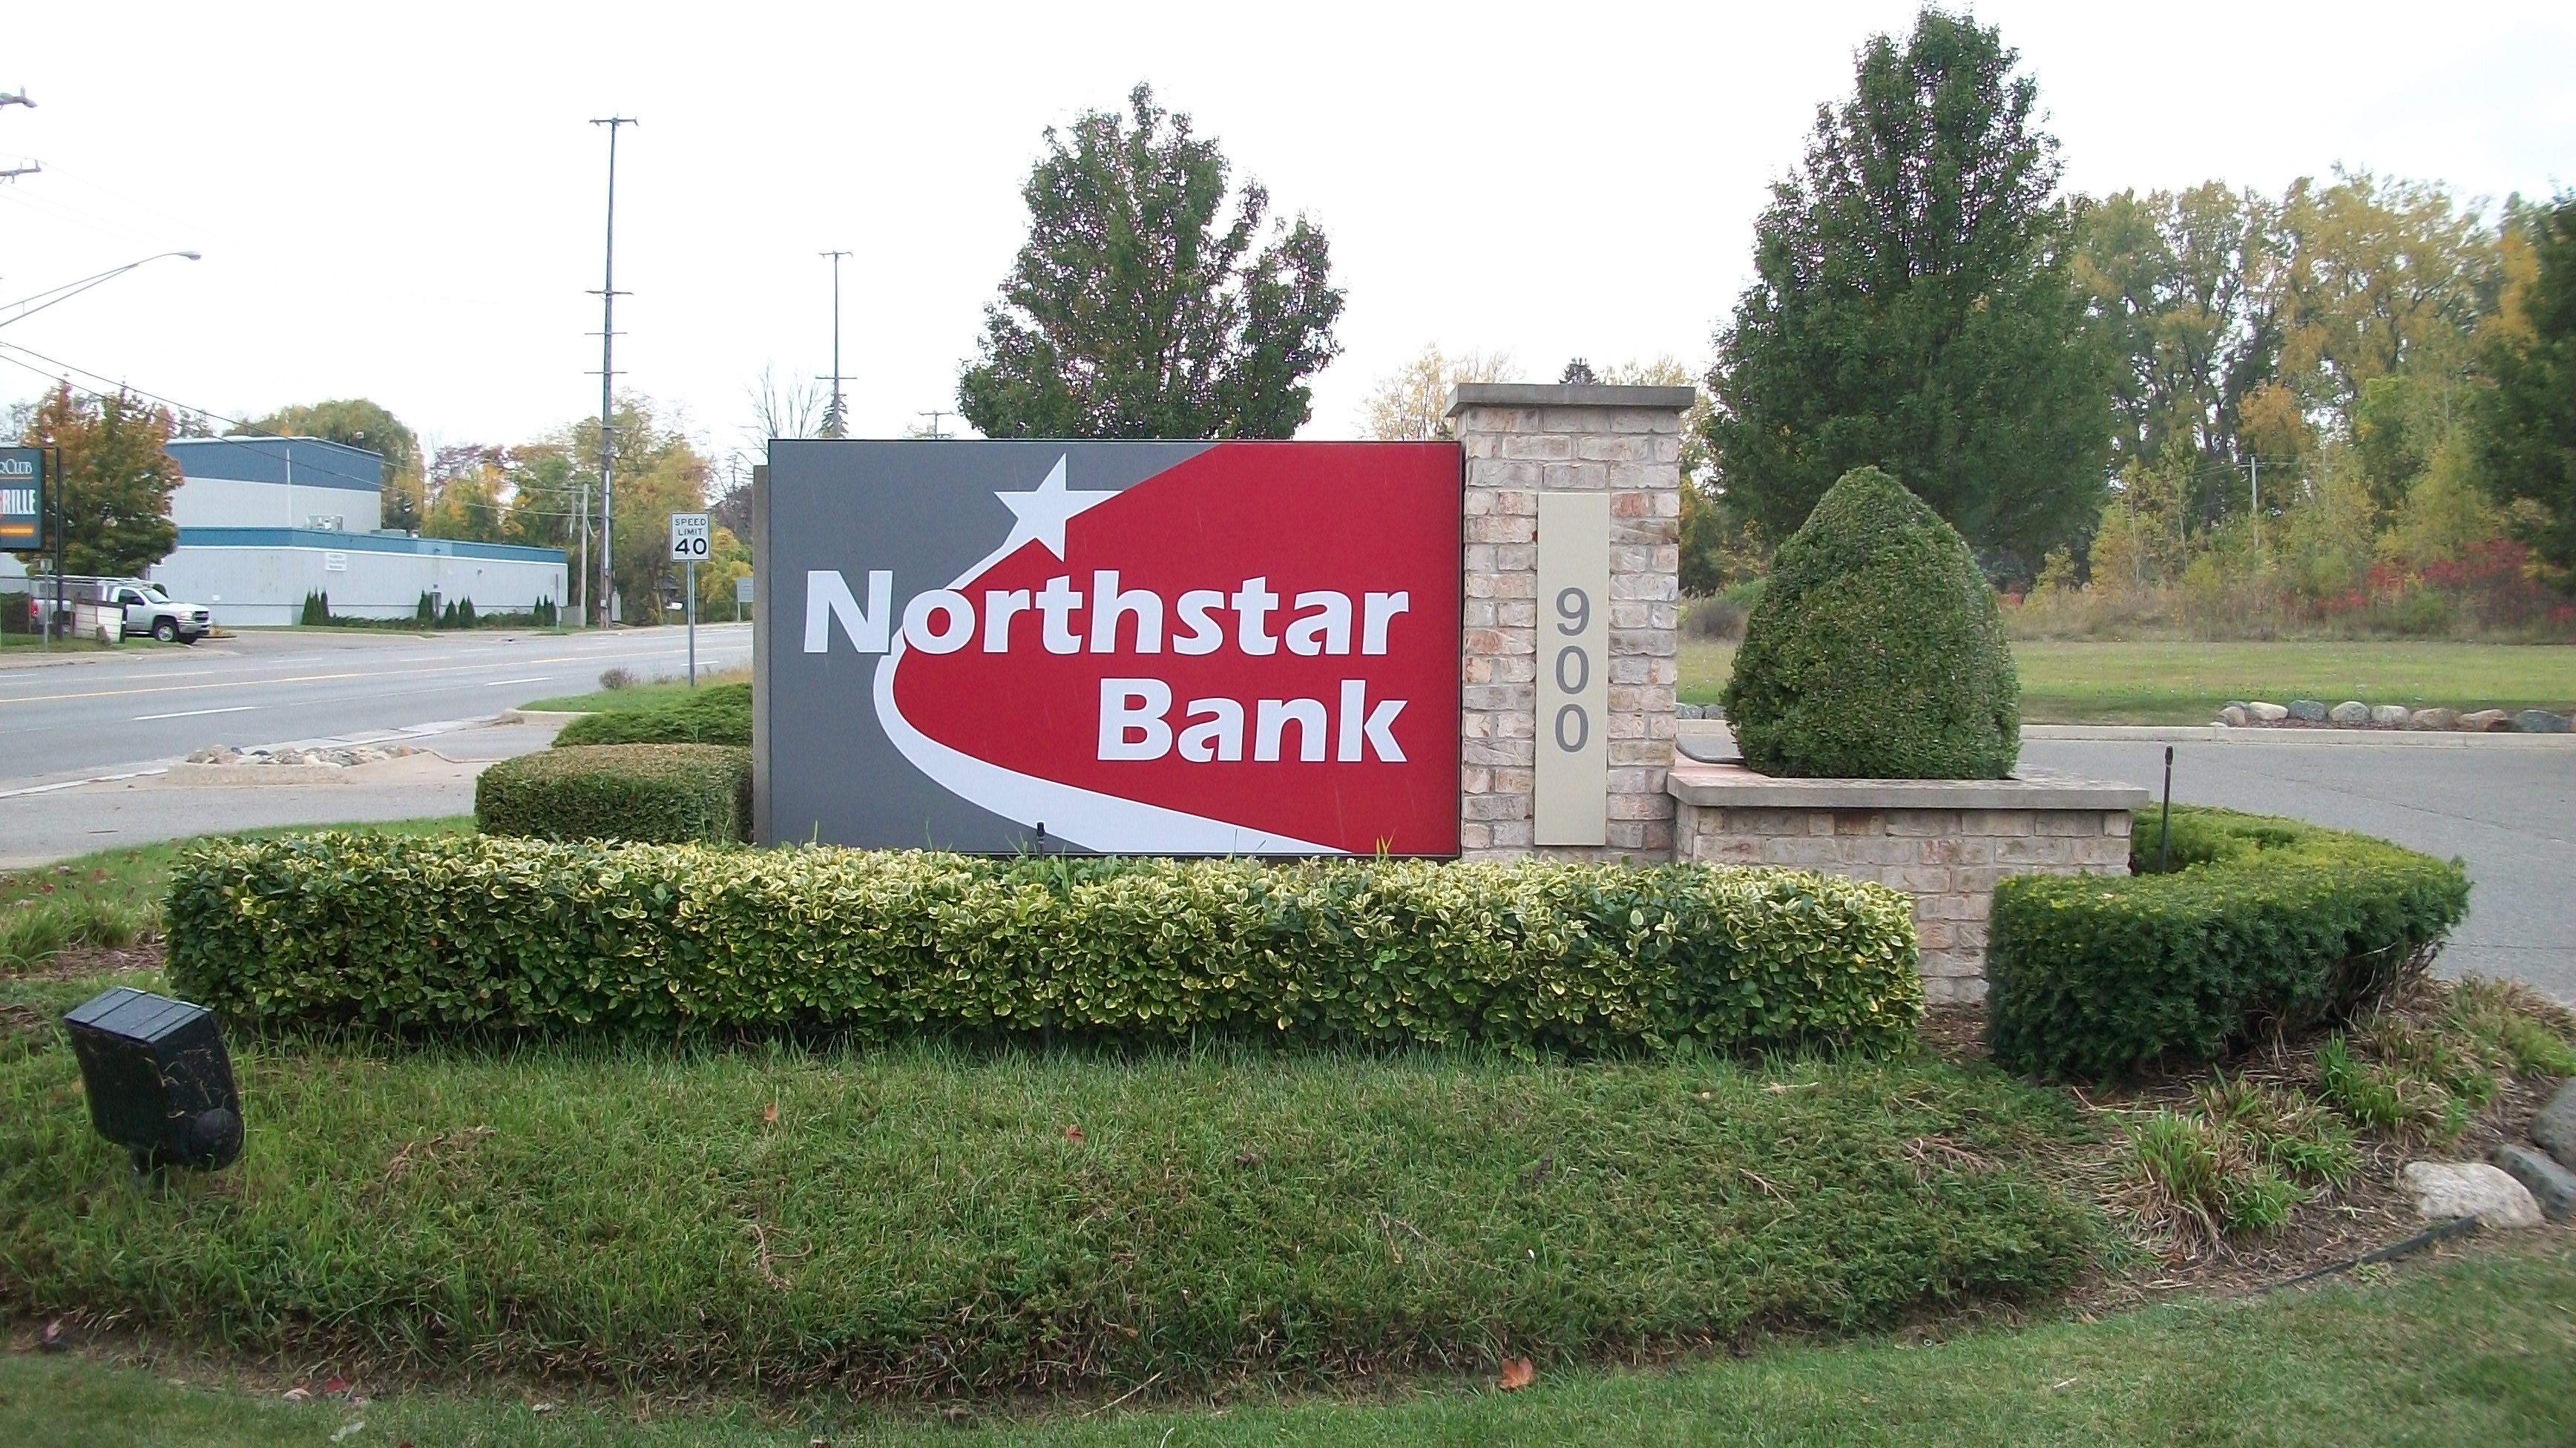 Northstar Bank - Algonac